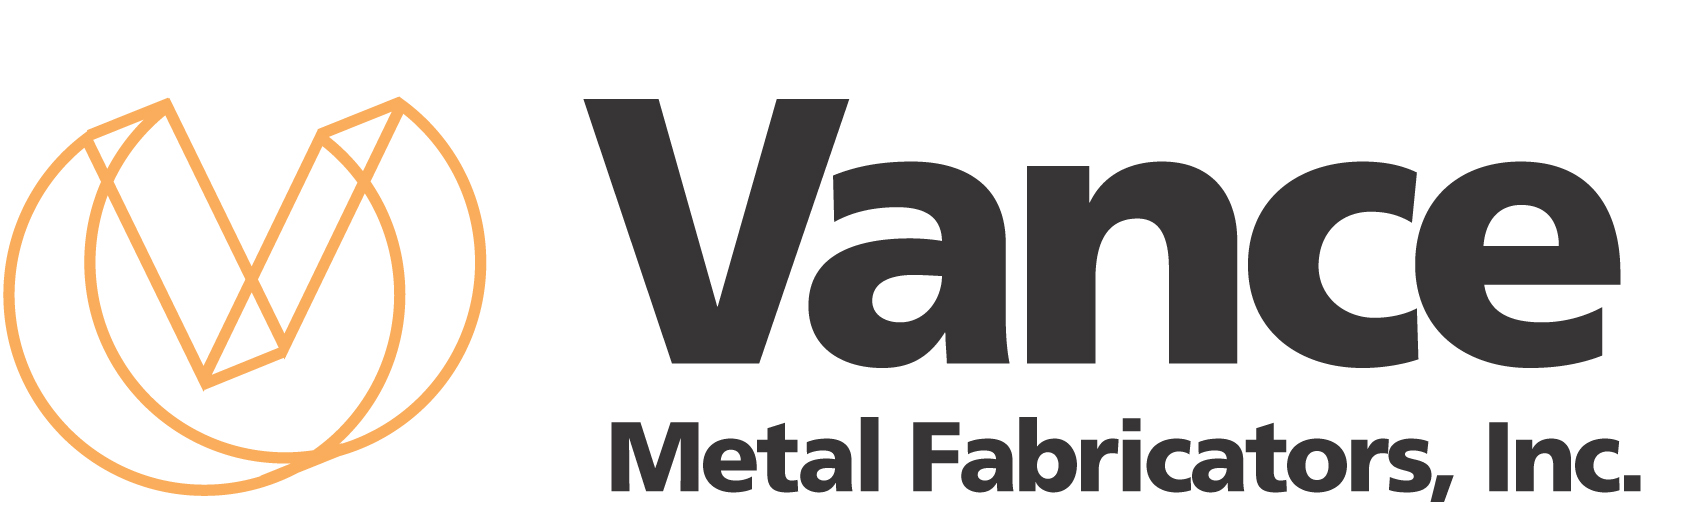 Vance Metal Fabricators Logo